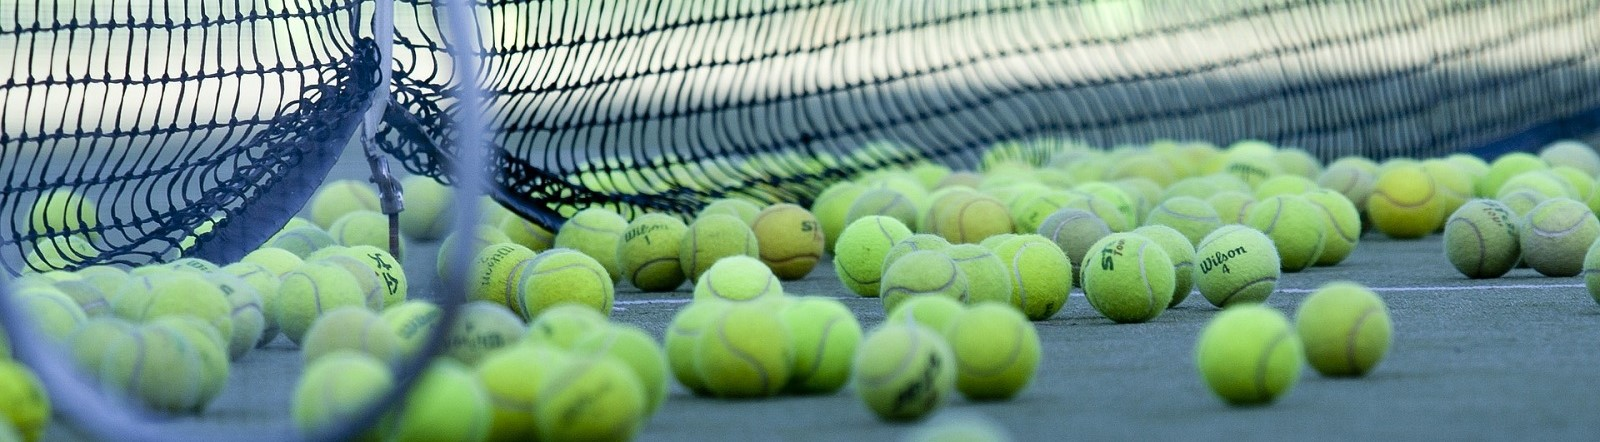 Image by HeungSoon from Pixabay of tennis court and balls